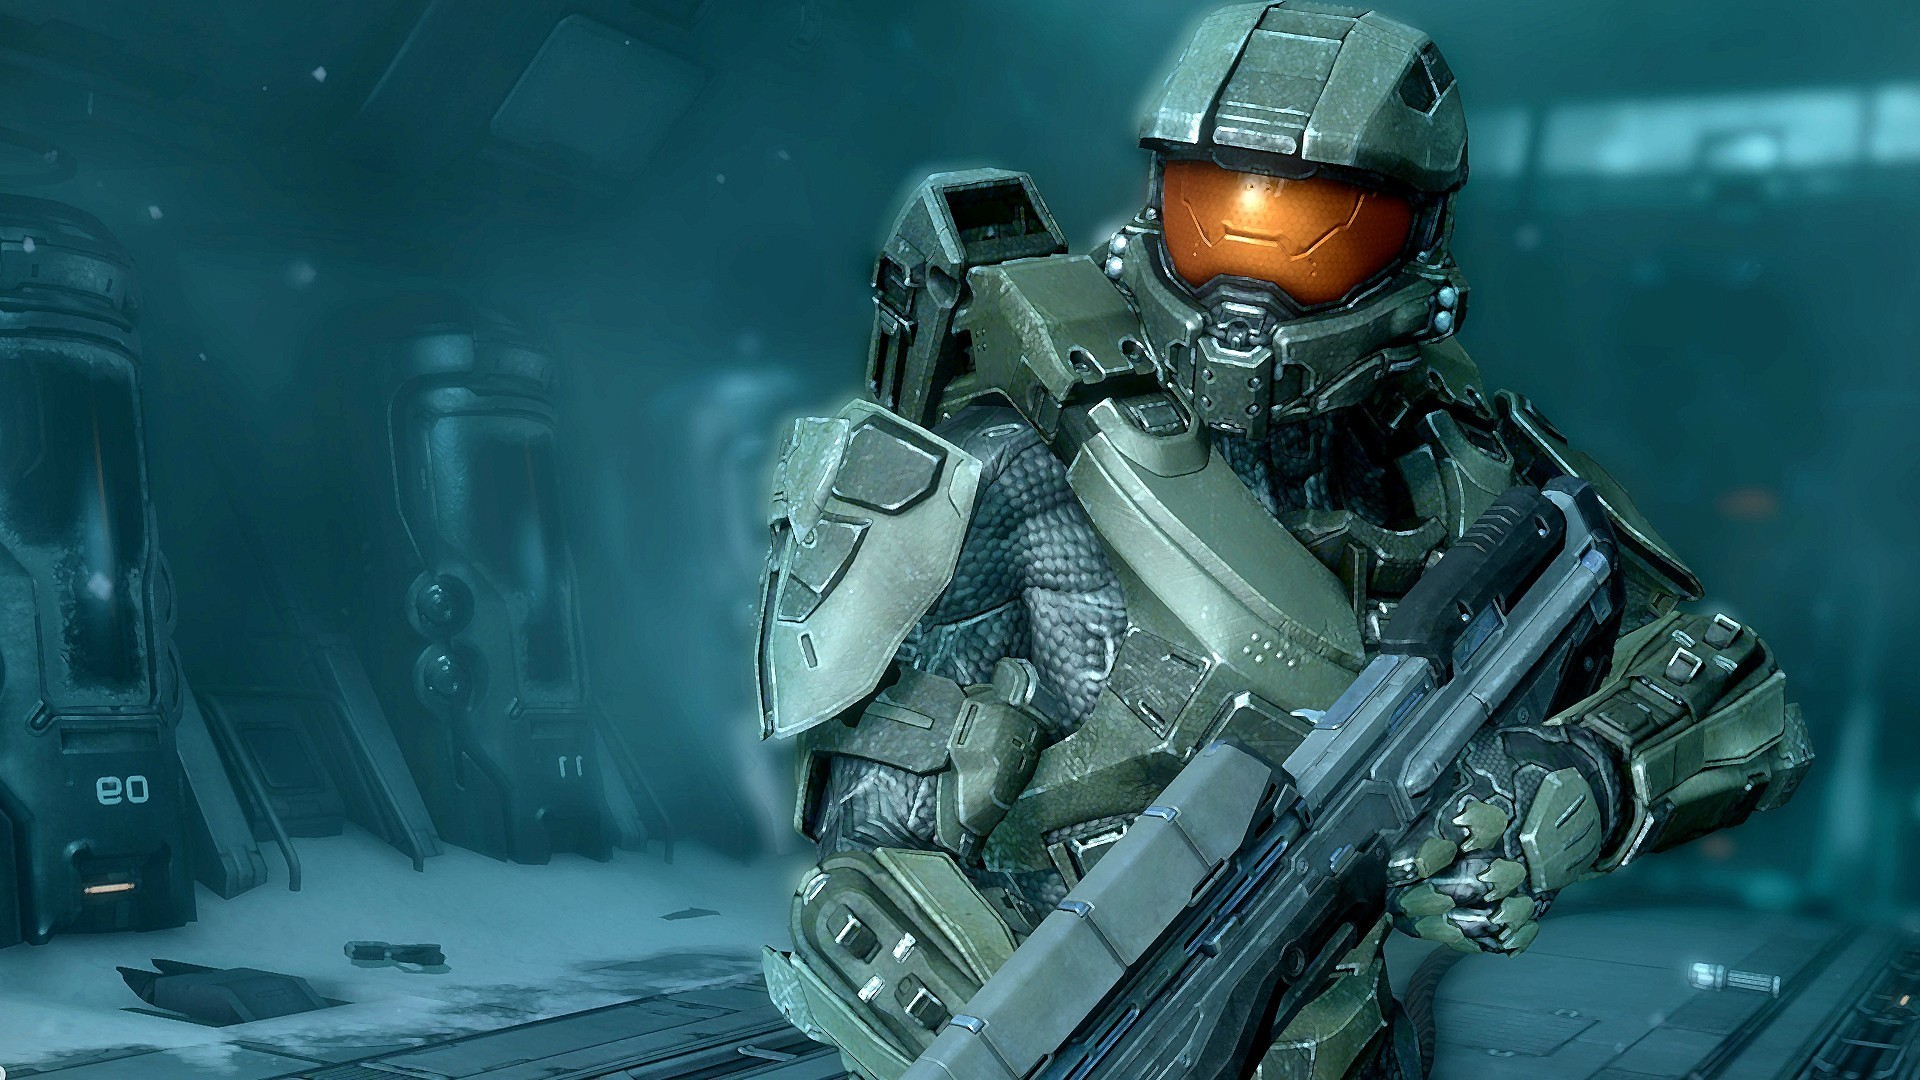 Halo 4 Photo HD Wallpapers Background Photos Apple Amazing 4k 1920x1080